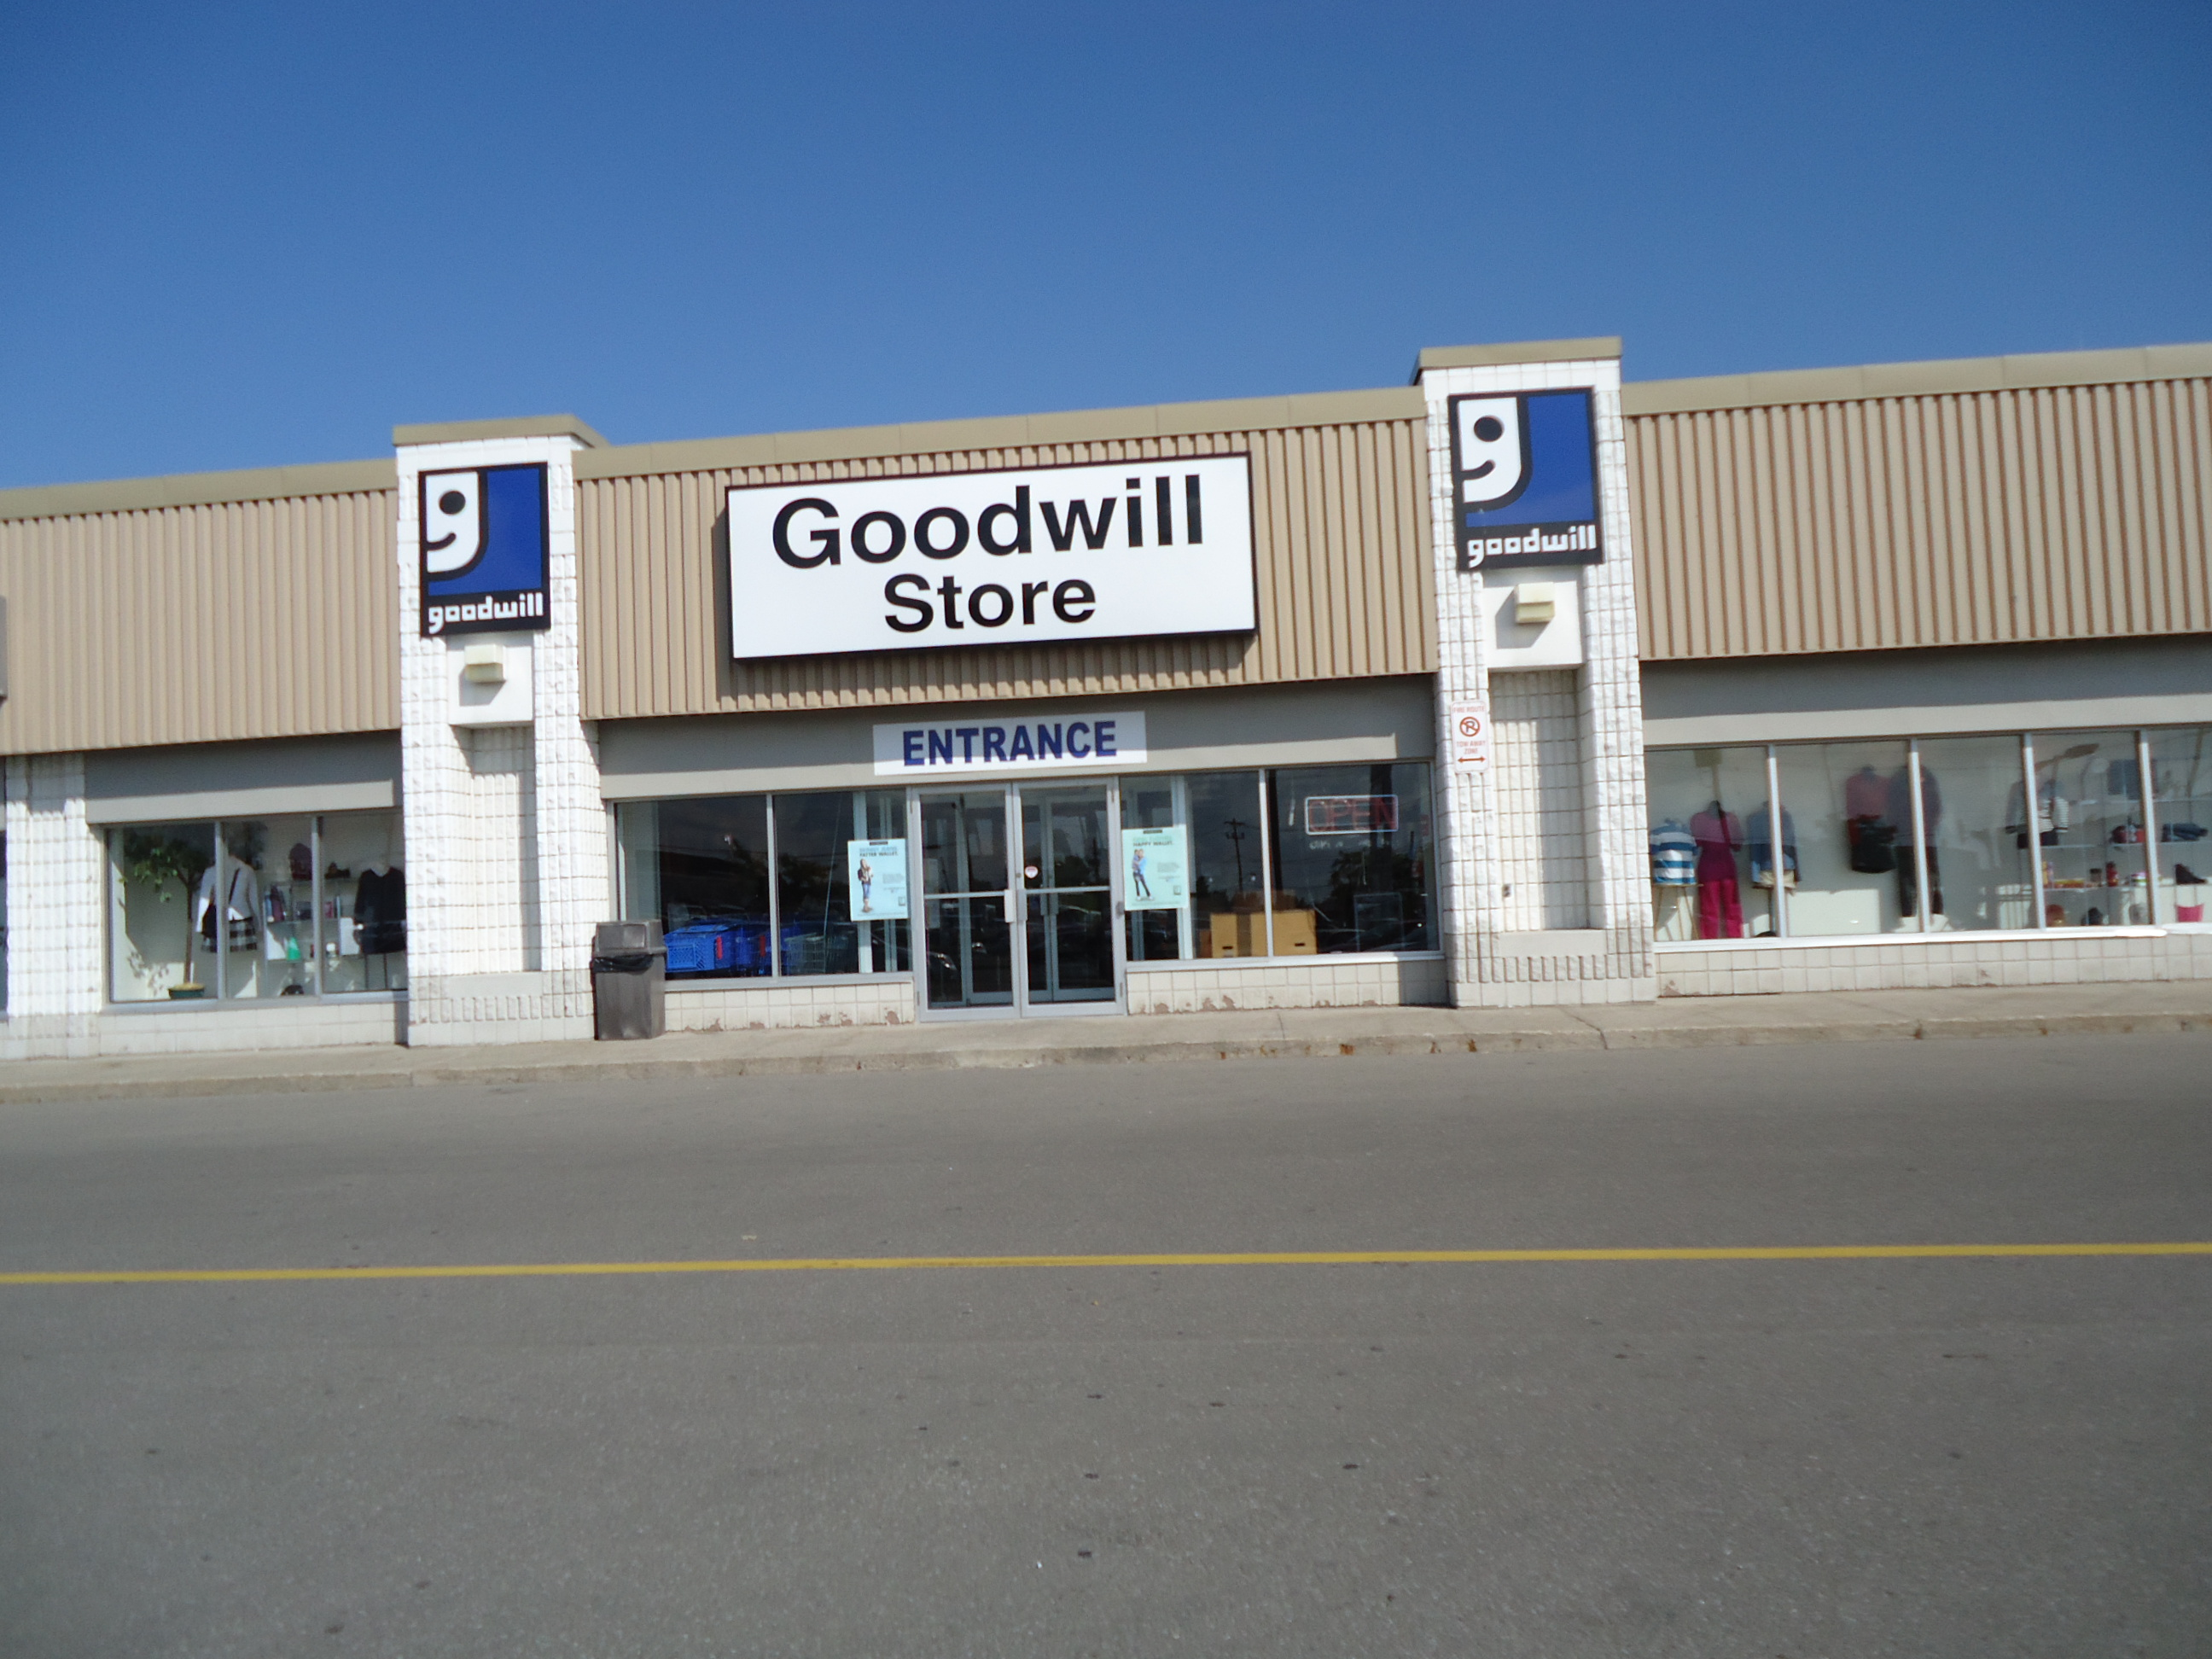 Furniture Stores In Ontario Canada Goodwill Store Used Furniture Clothing 495 Welland Ave St